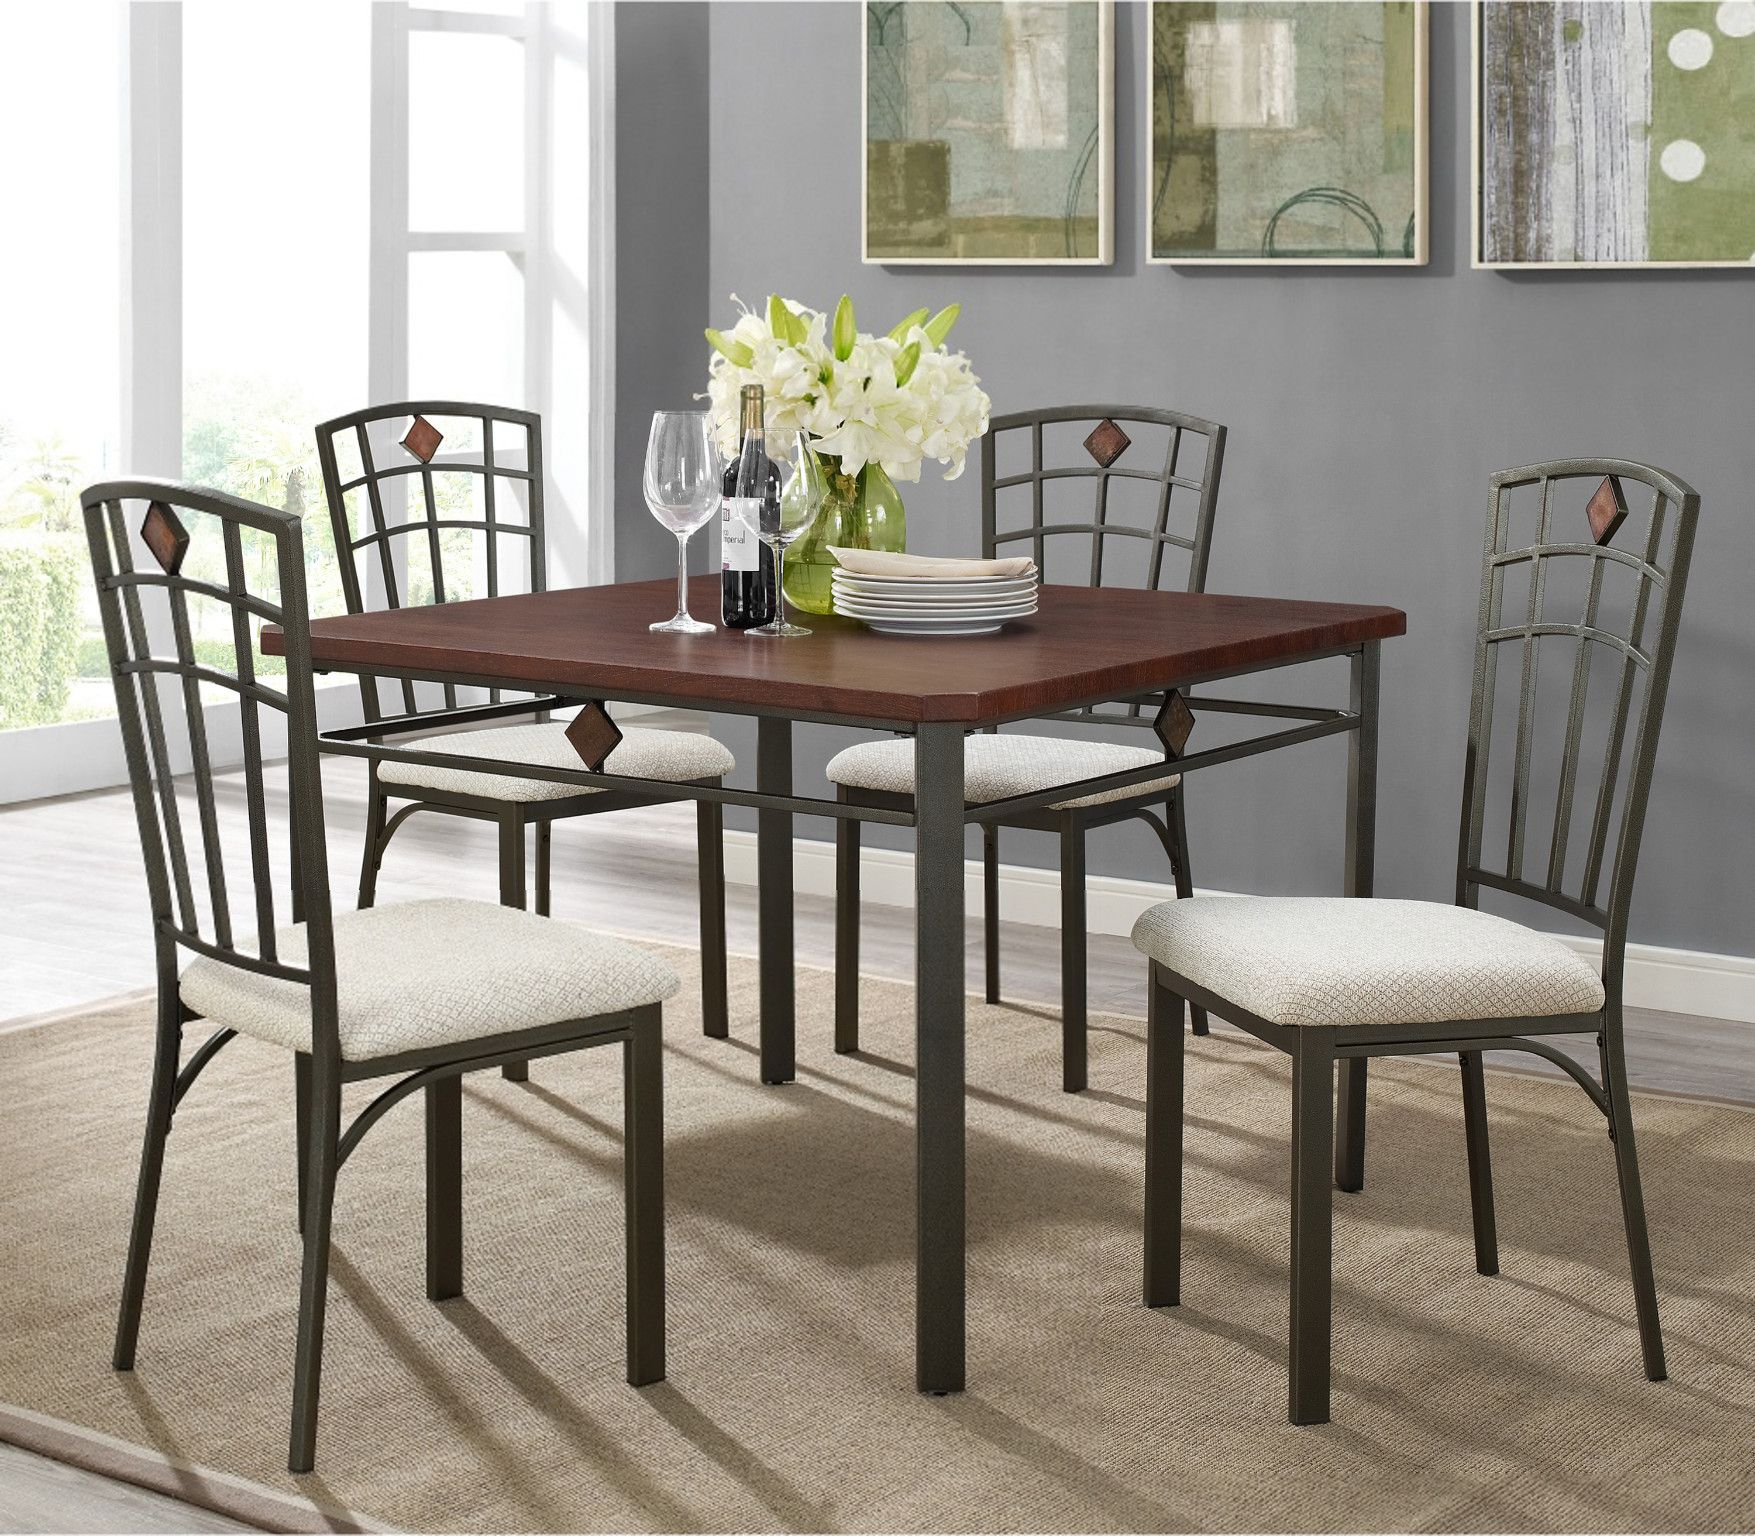 44+ 42 dining table and chairs Ideas